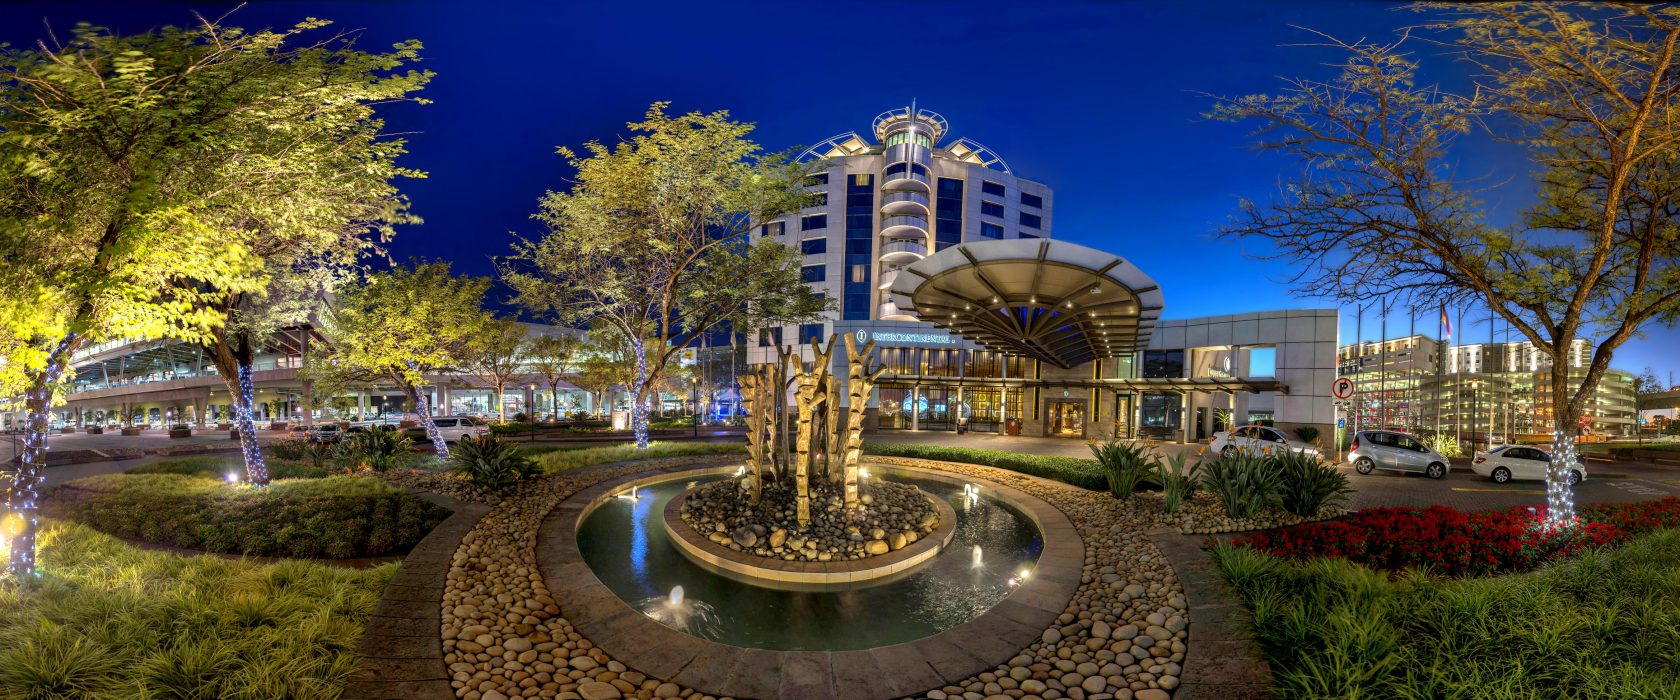 Panoramic View Of The Hotel Exterior And Gardens